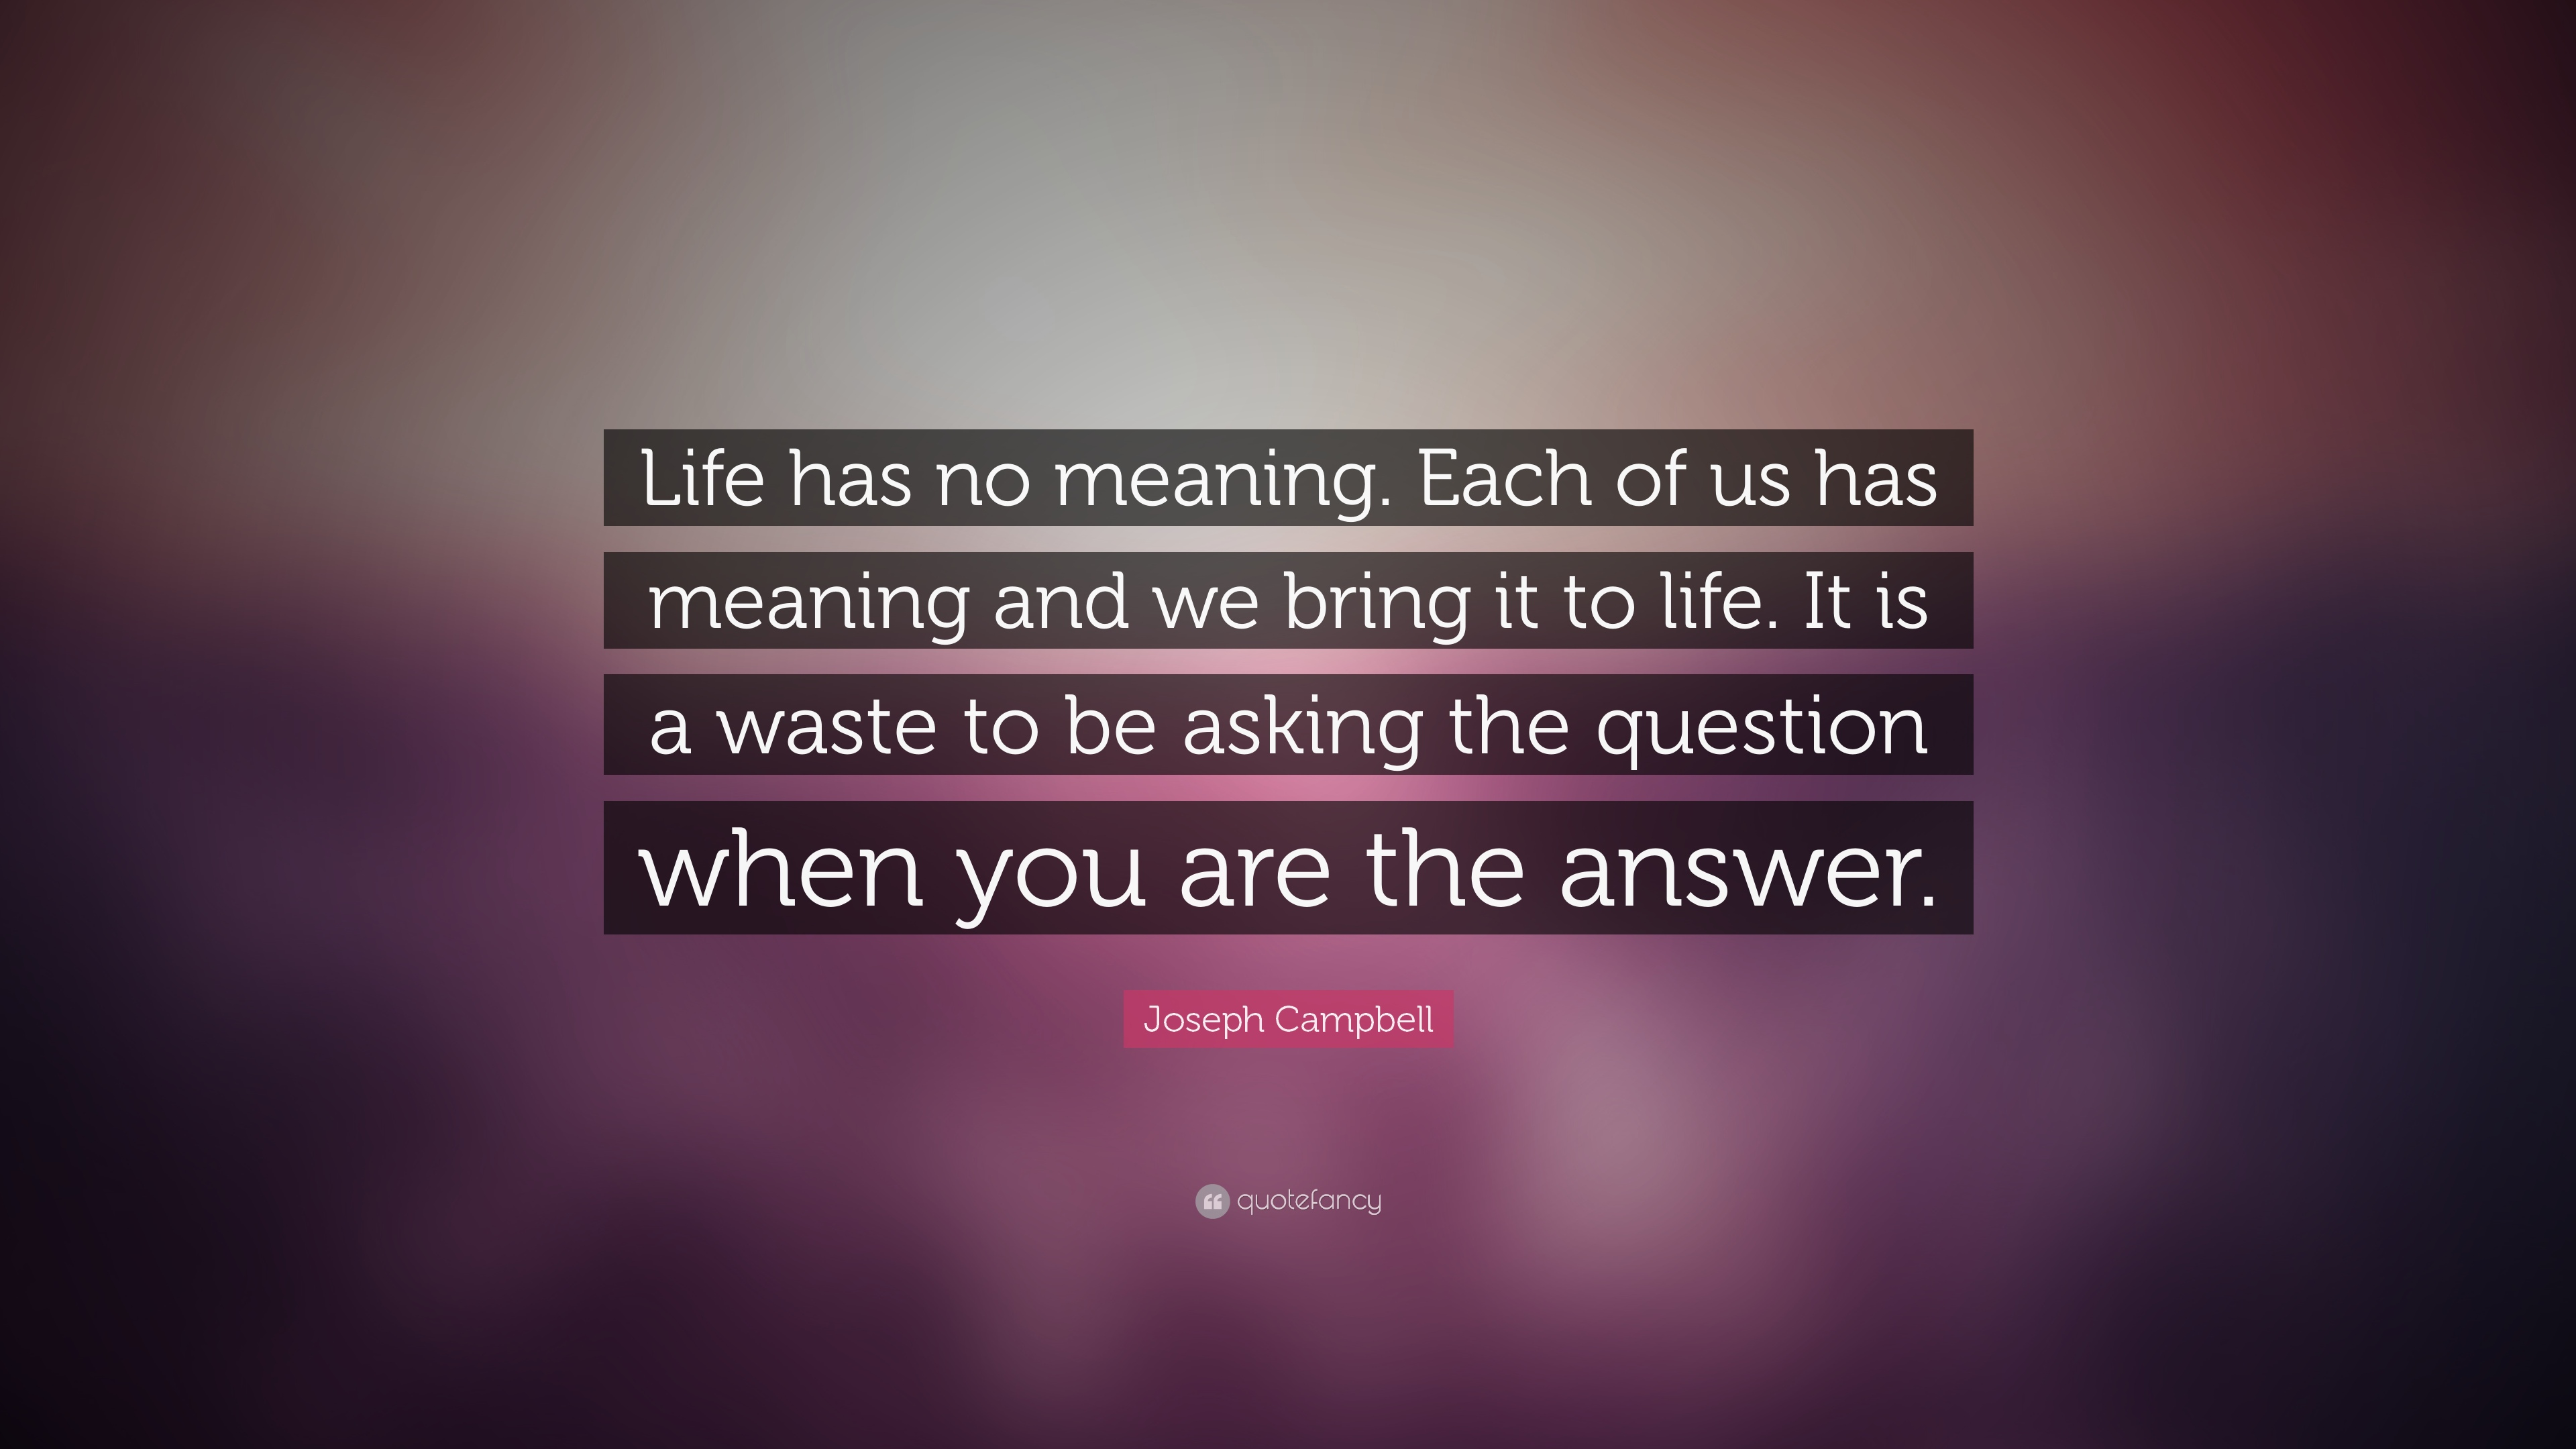 Socrates Wallpaper Quotes Joseph Campbell Quote Life Has No Meaning Each Of Us